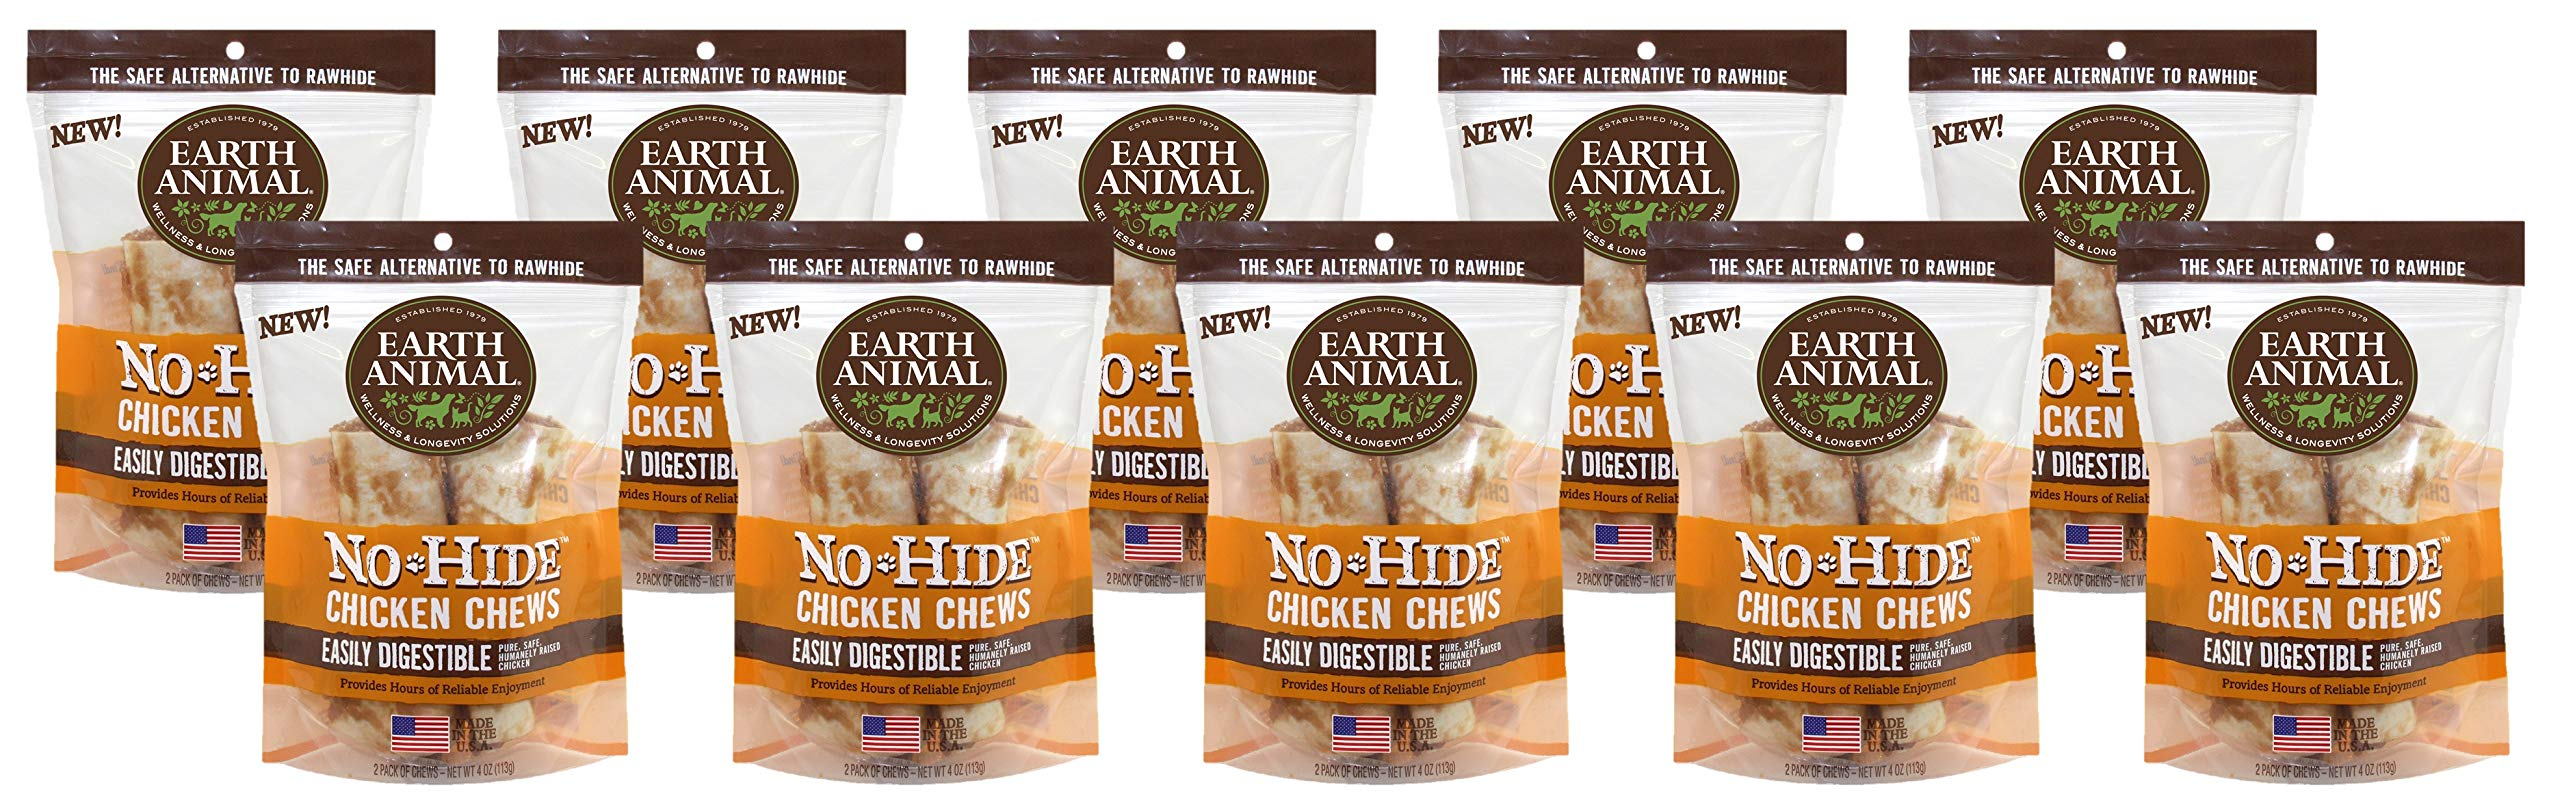 Earth Animal 20 Count No-Hide Chicken Chews, Small 4 Inch, Rawhide Alternative for Dogs Up to 45 Pounds